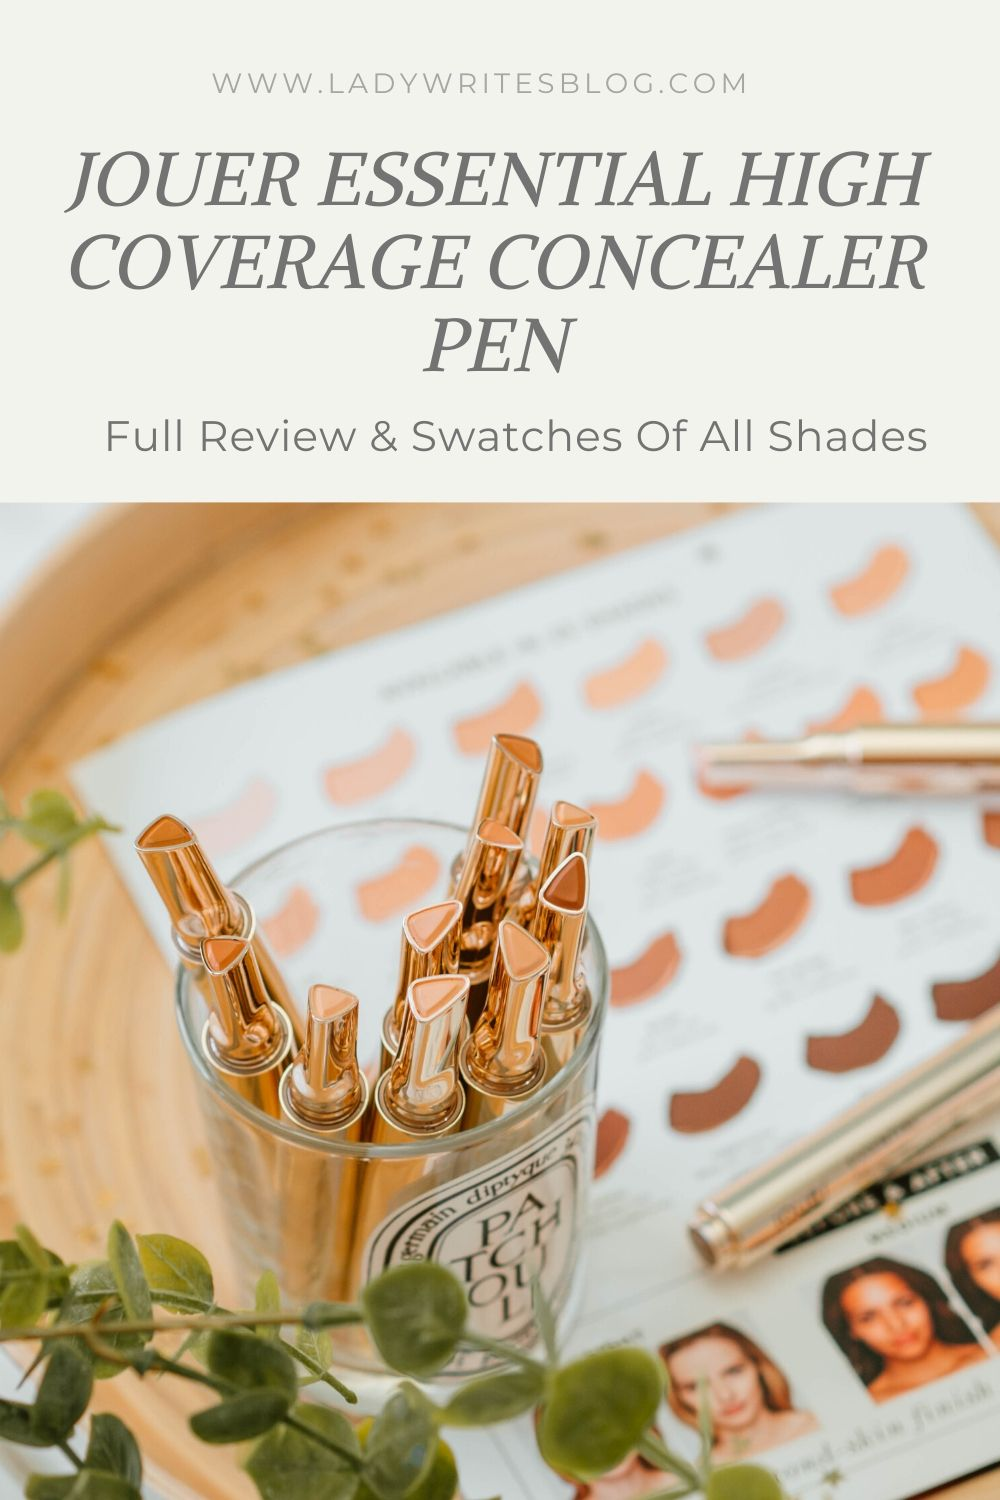 Full Review & Swatches Of All Shades